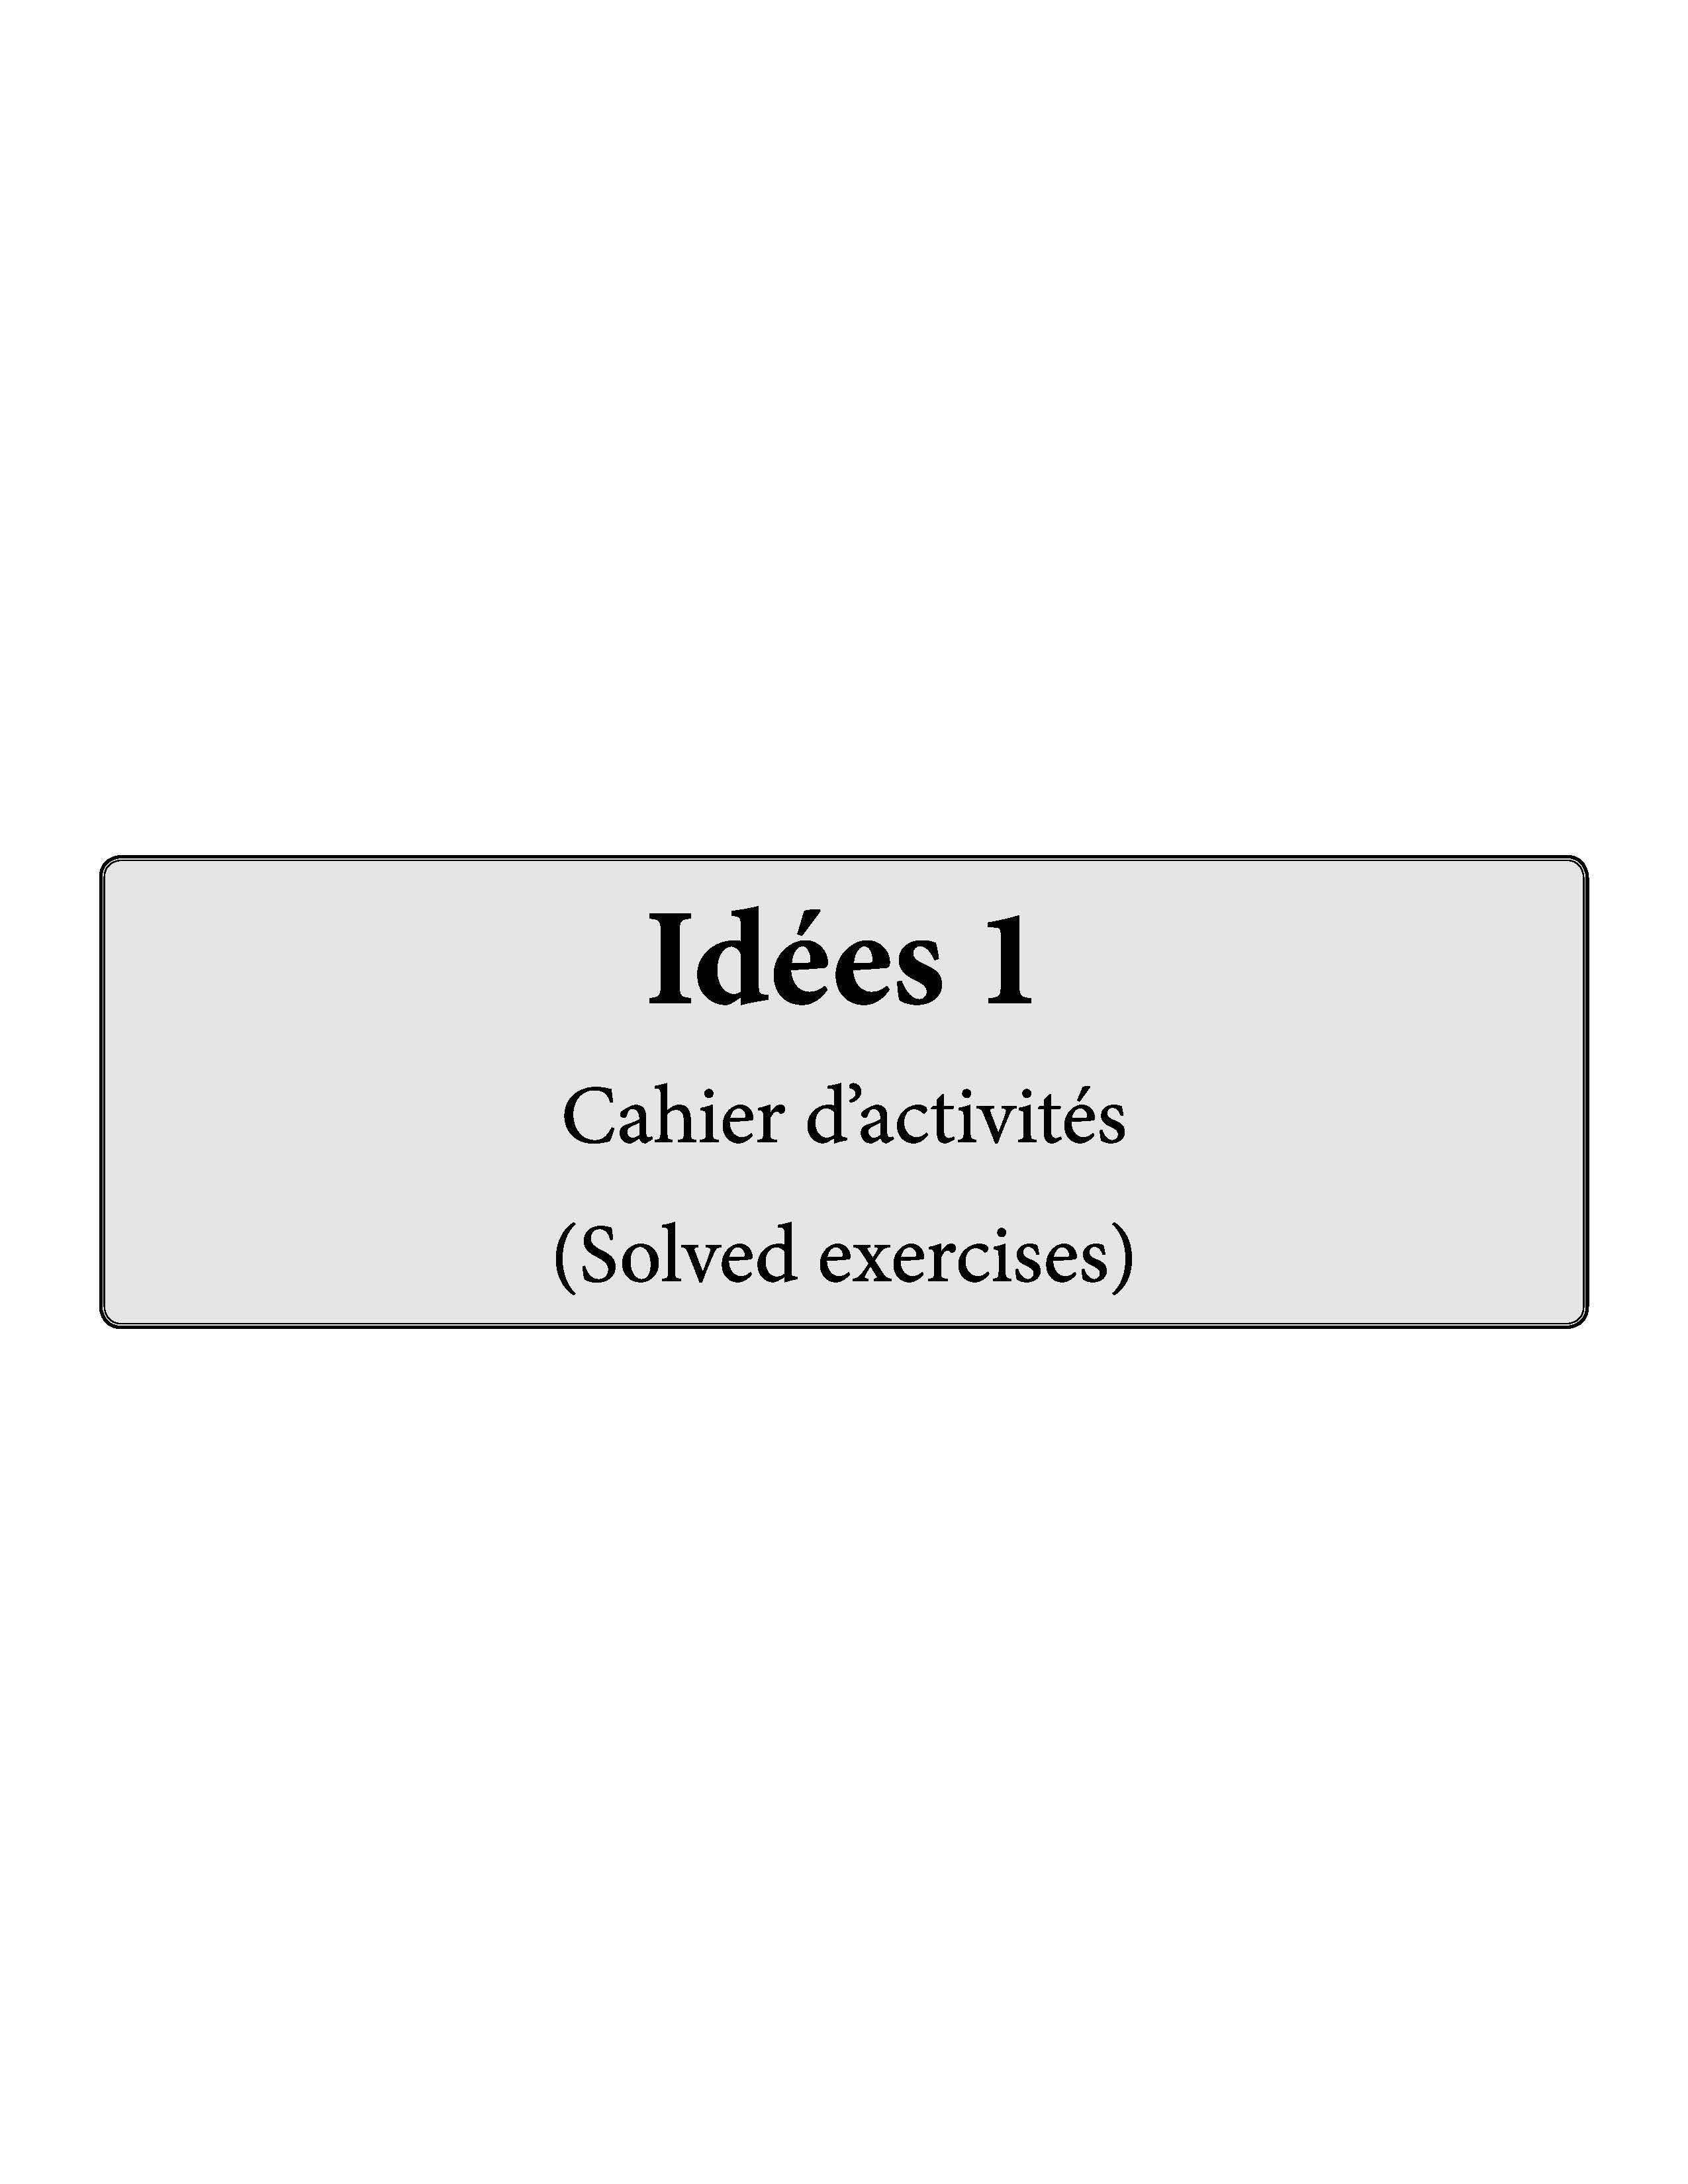 Idées Complete Study Material 1 (For Class 6) Solved Exercises